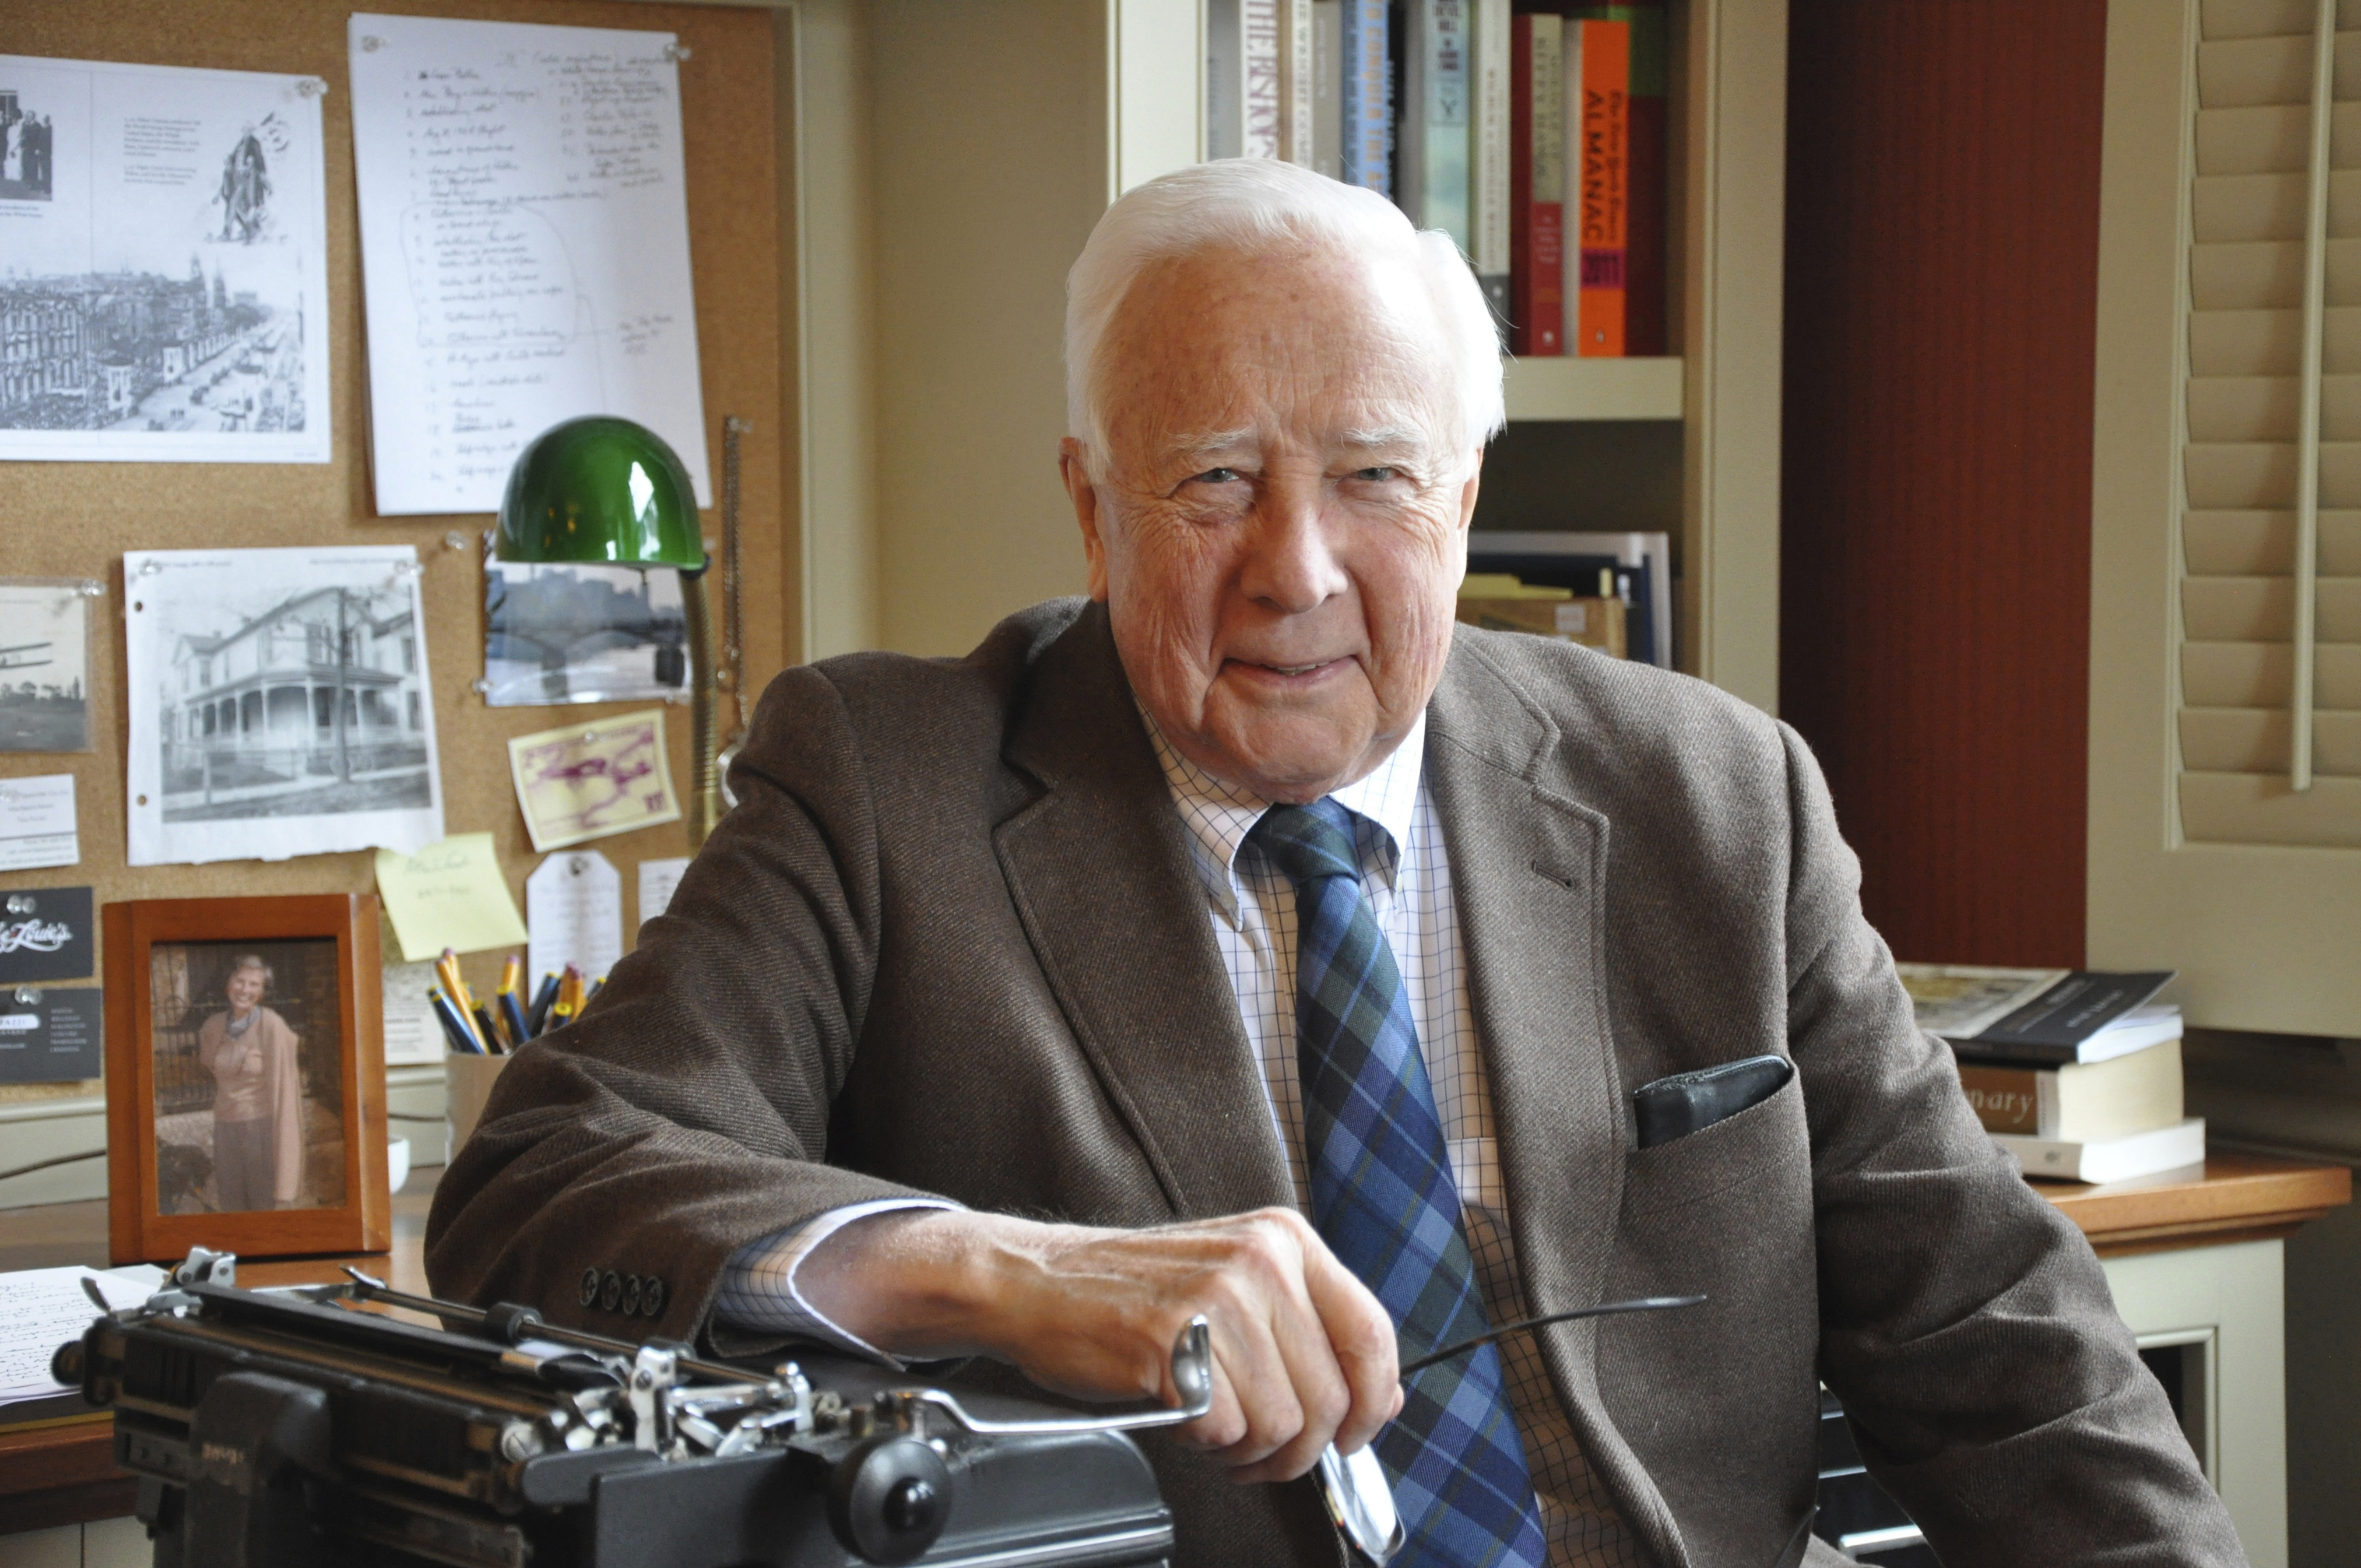 David McCullough at The Citadel